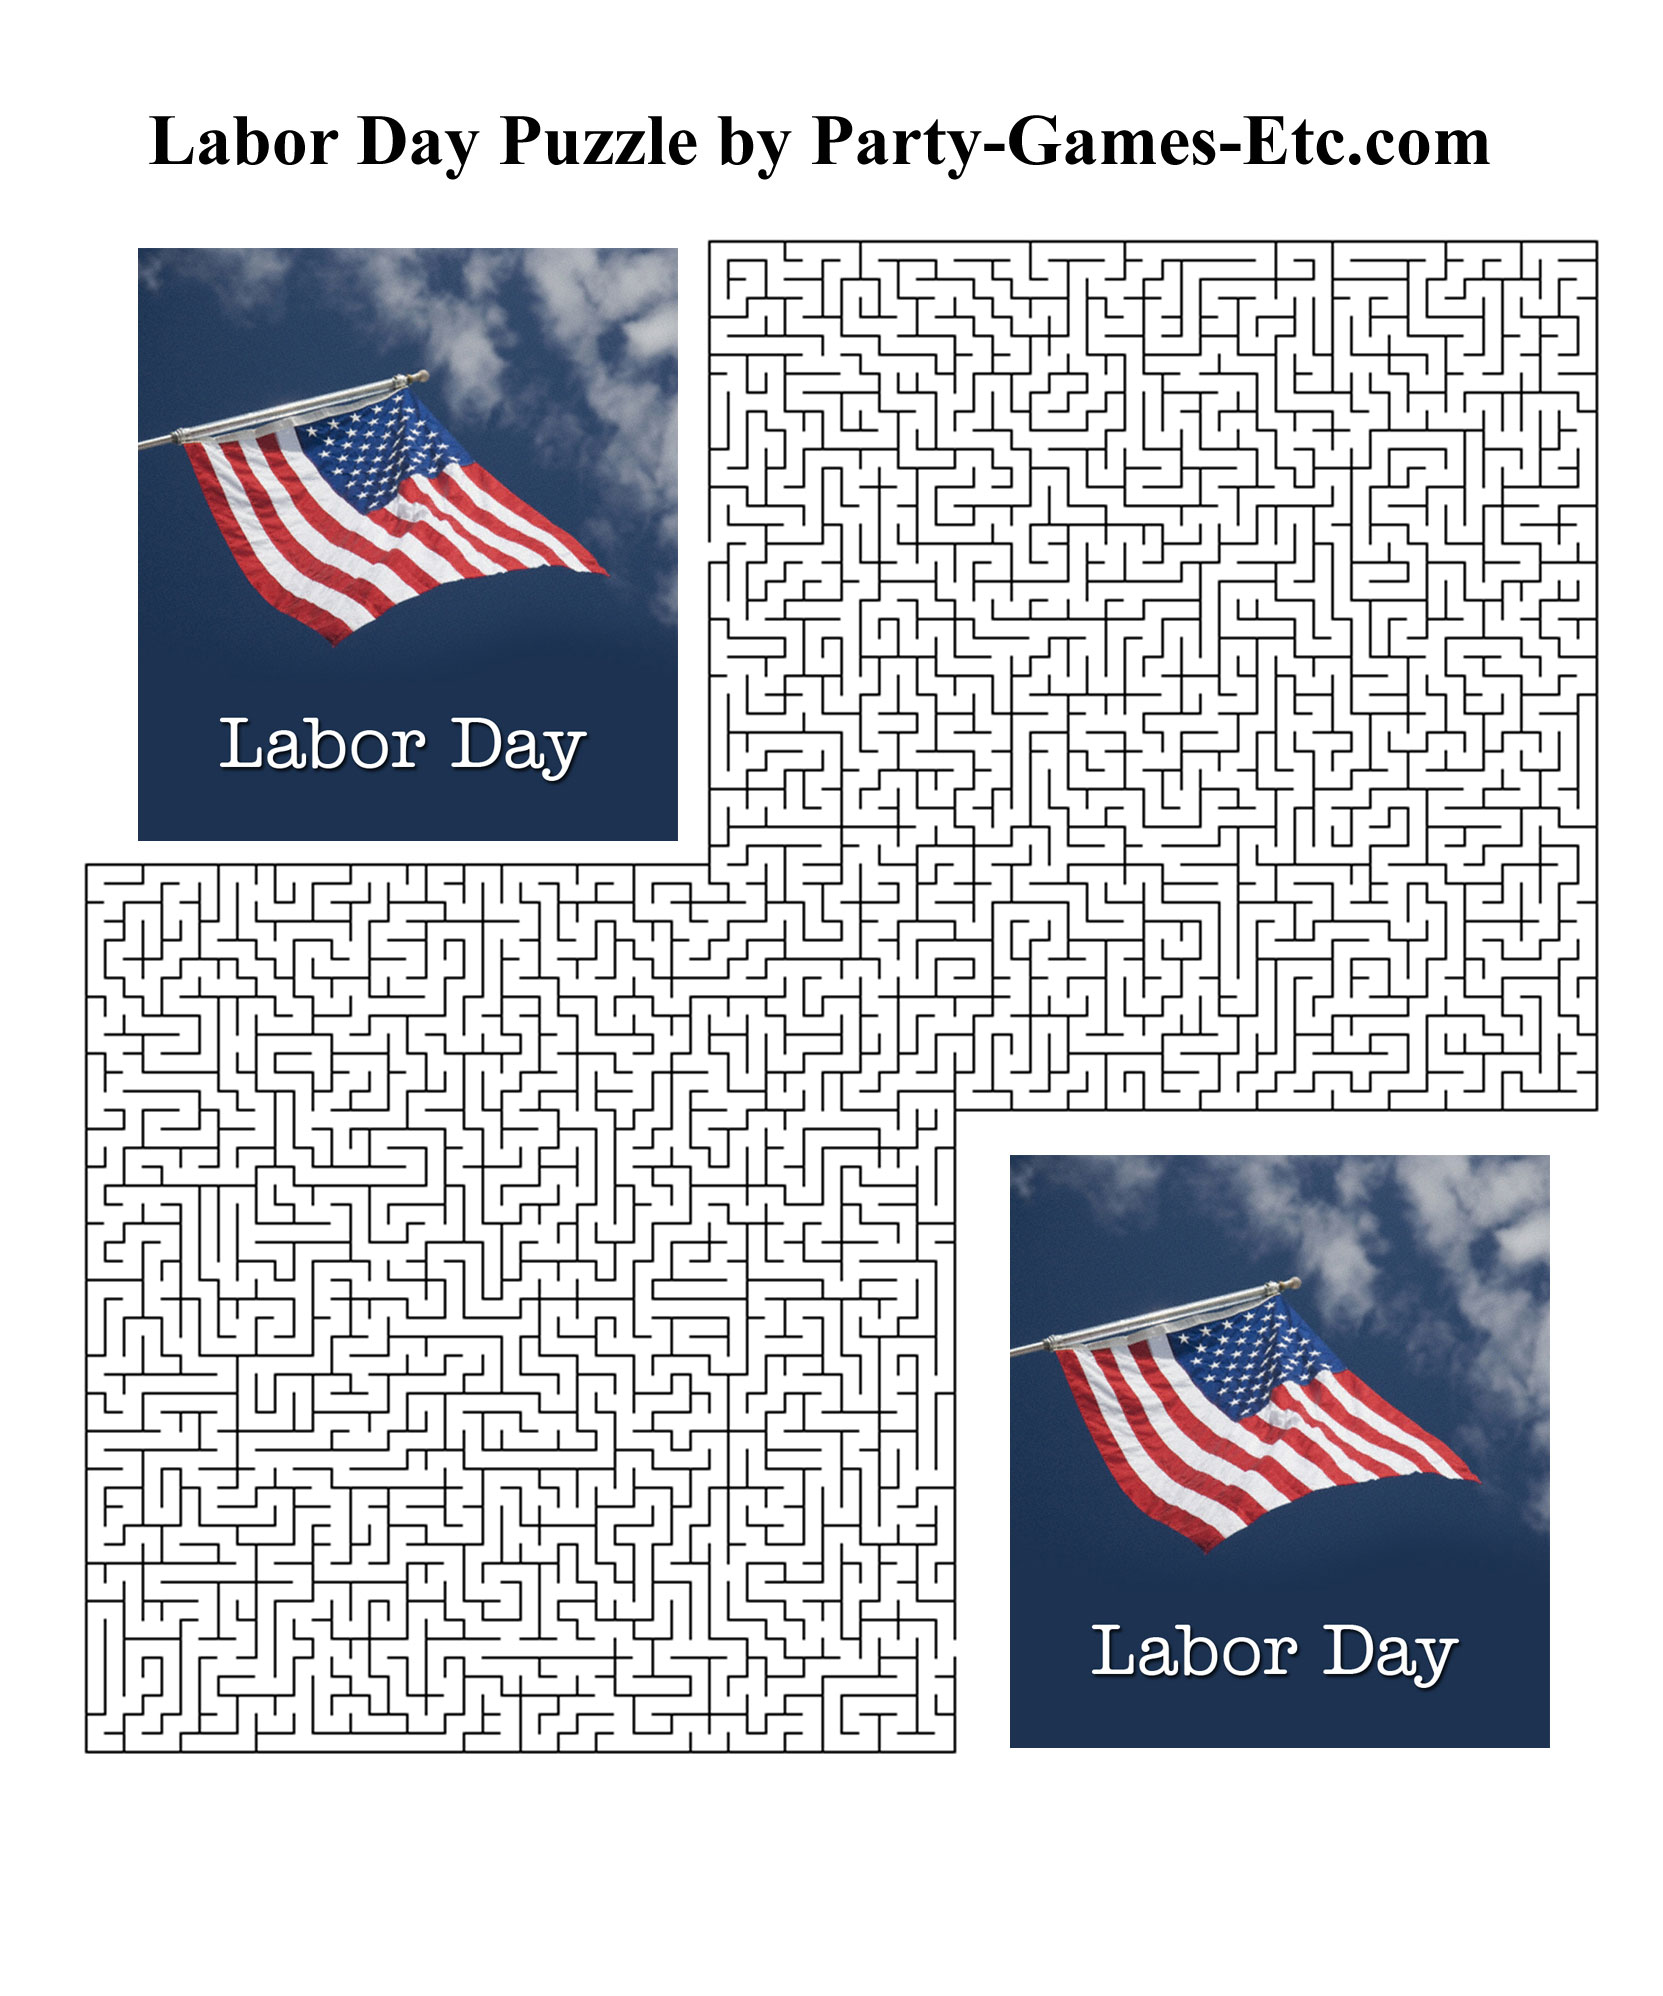 picture regarding Labor Day Printable referred to as Labor Working day Get together Video games, Totally free Printable Game titles and Functions